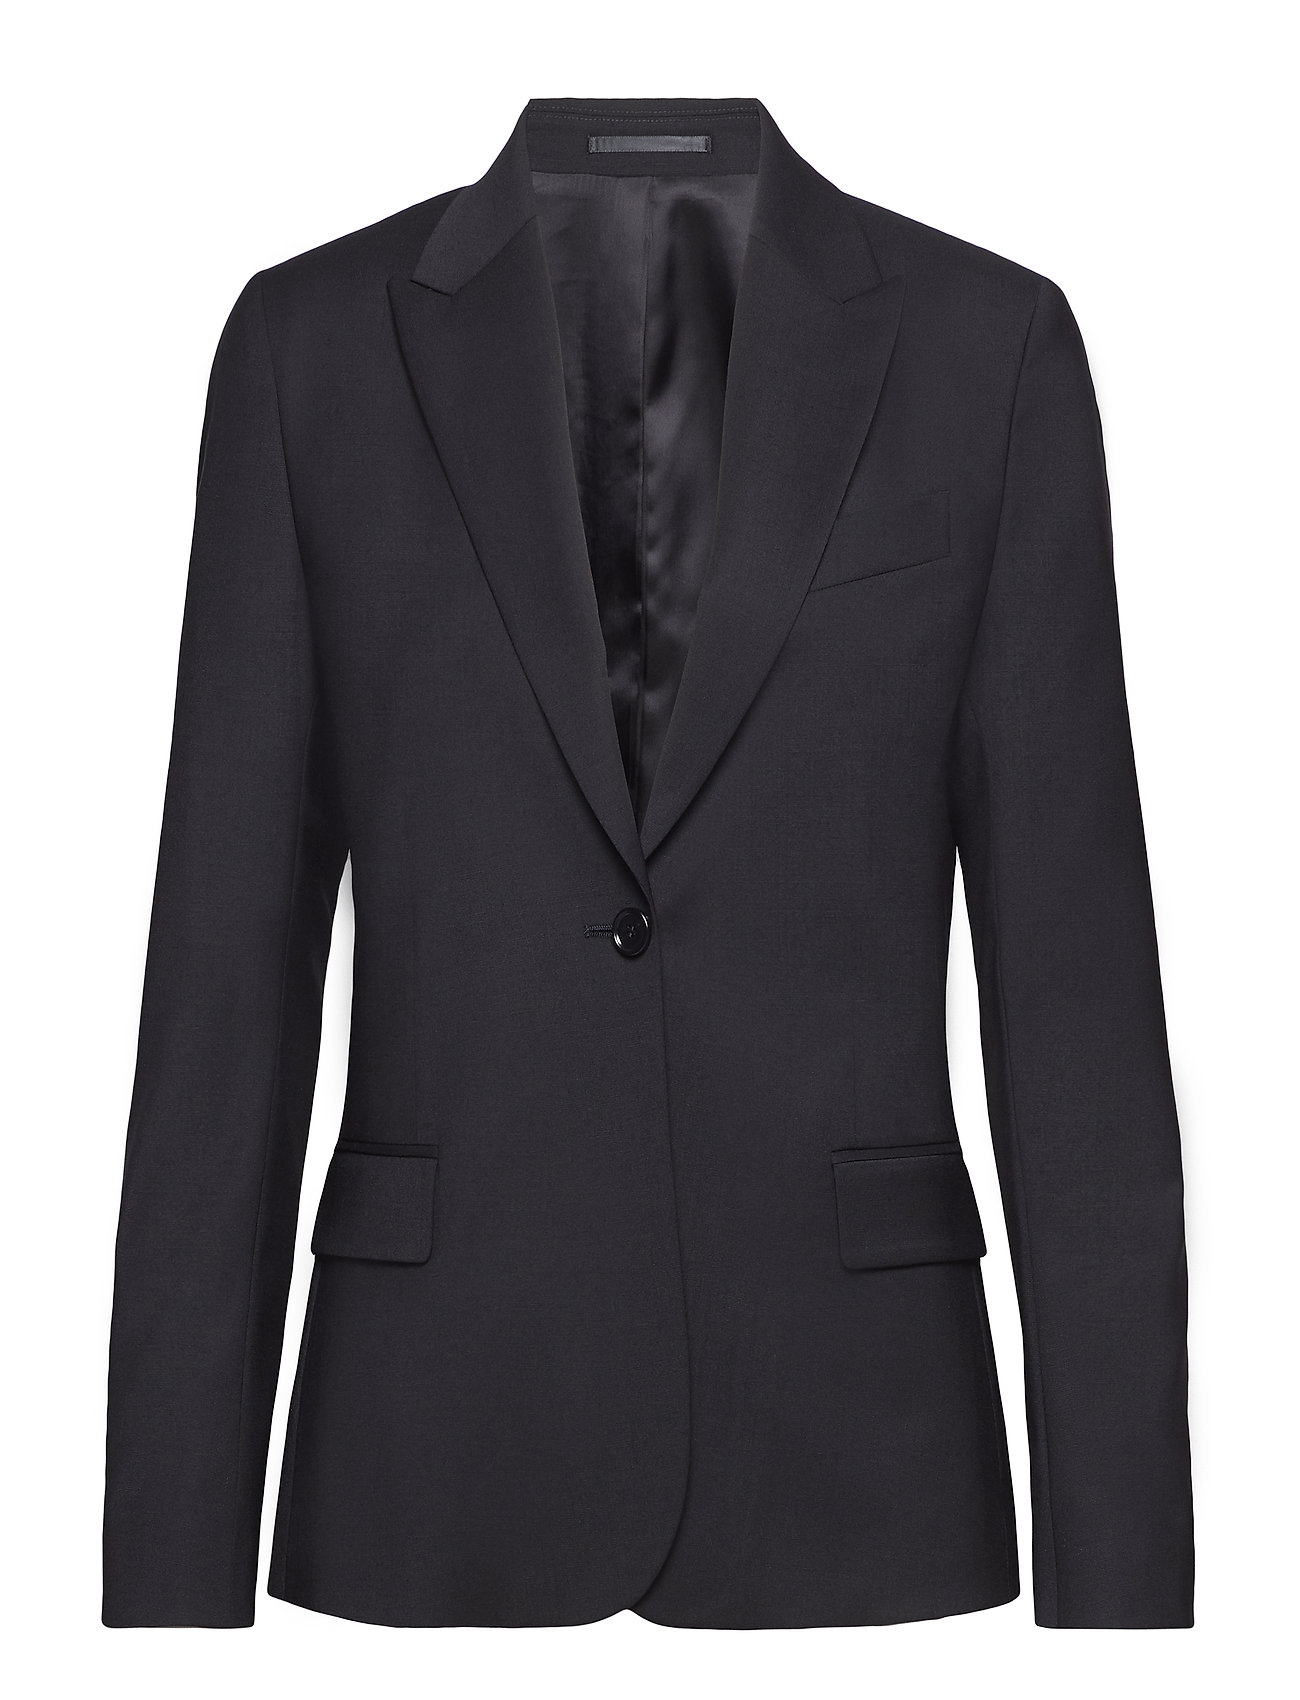 Image of Sasha Cool Wool Blazer Blazer Sort Filippa K (3347377755)